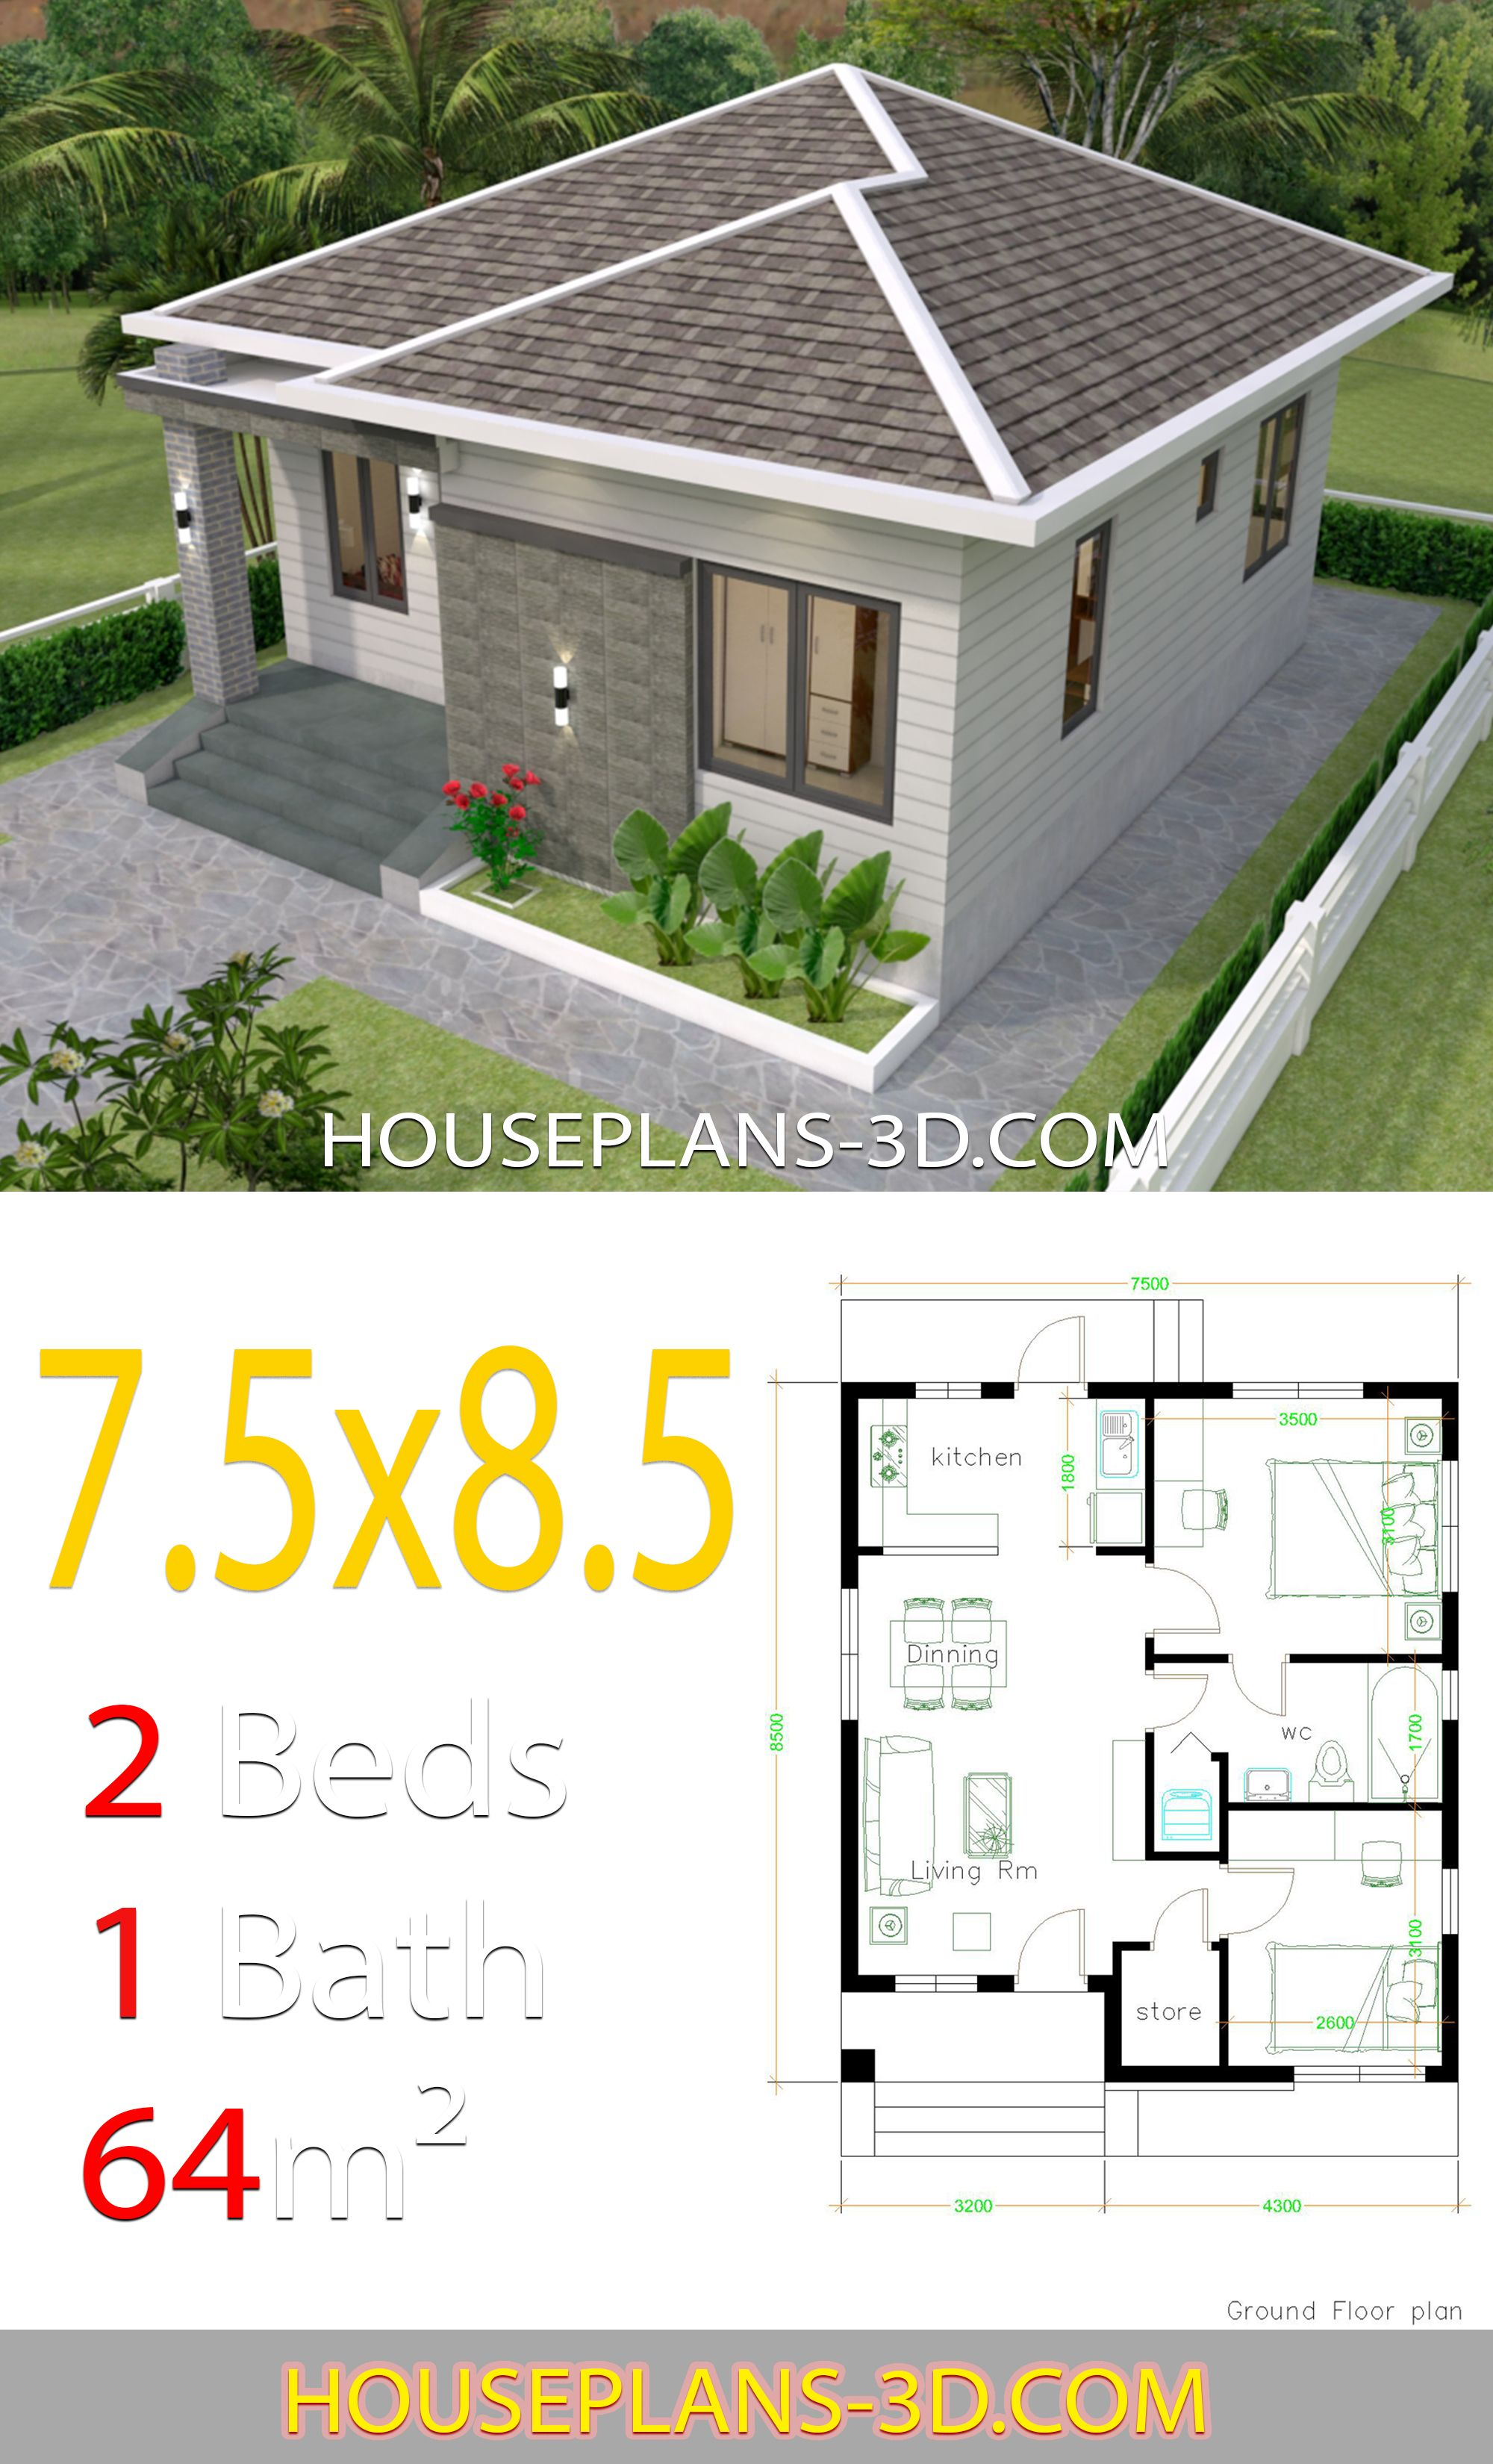 House Design 7 5x8 5 With 2 Bedrooms House Plans 3d Hotel Room Design Plan House Construction Plan My House Plans